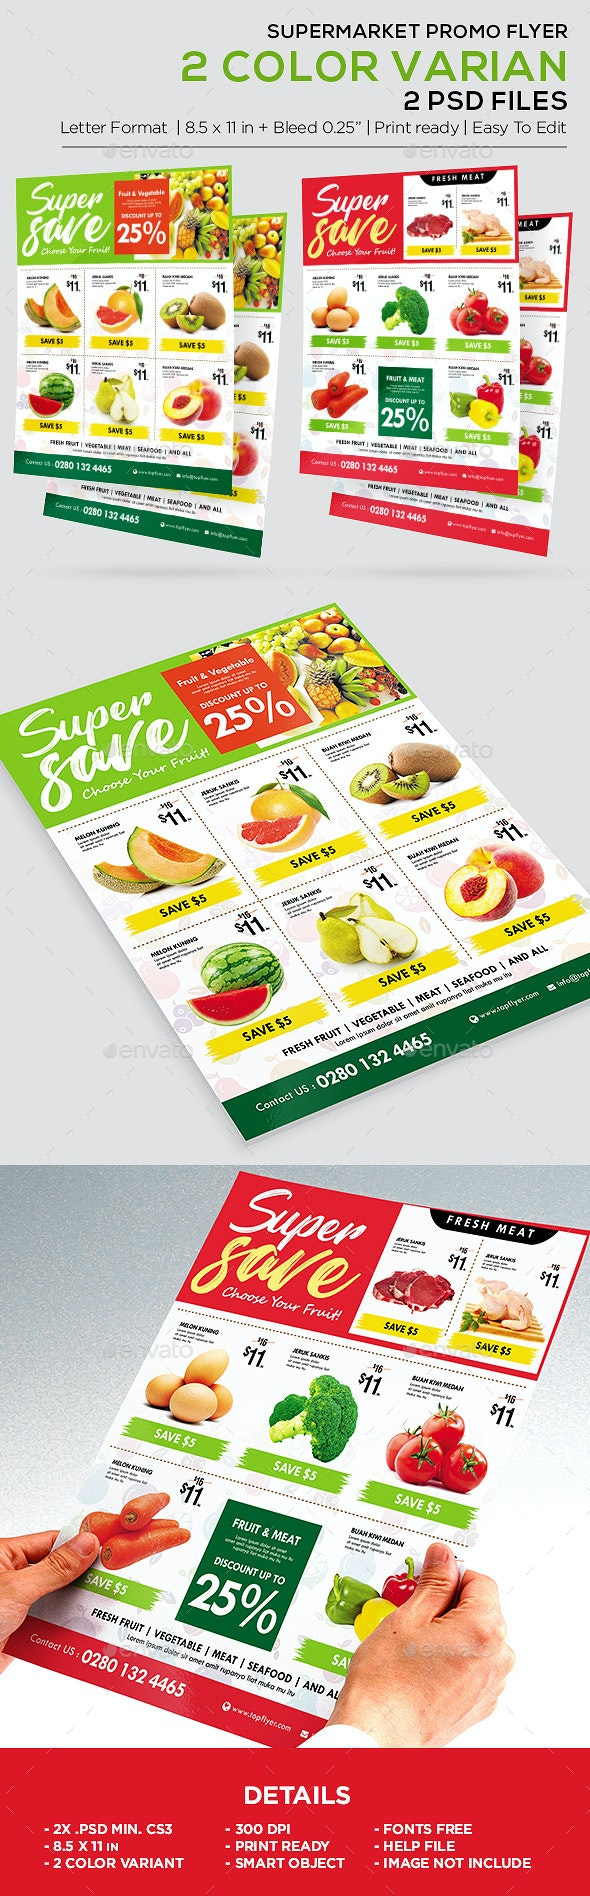 Supermarket Promotion Flyer - Product Catalog Flyer - Corporate Flyers